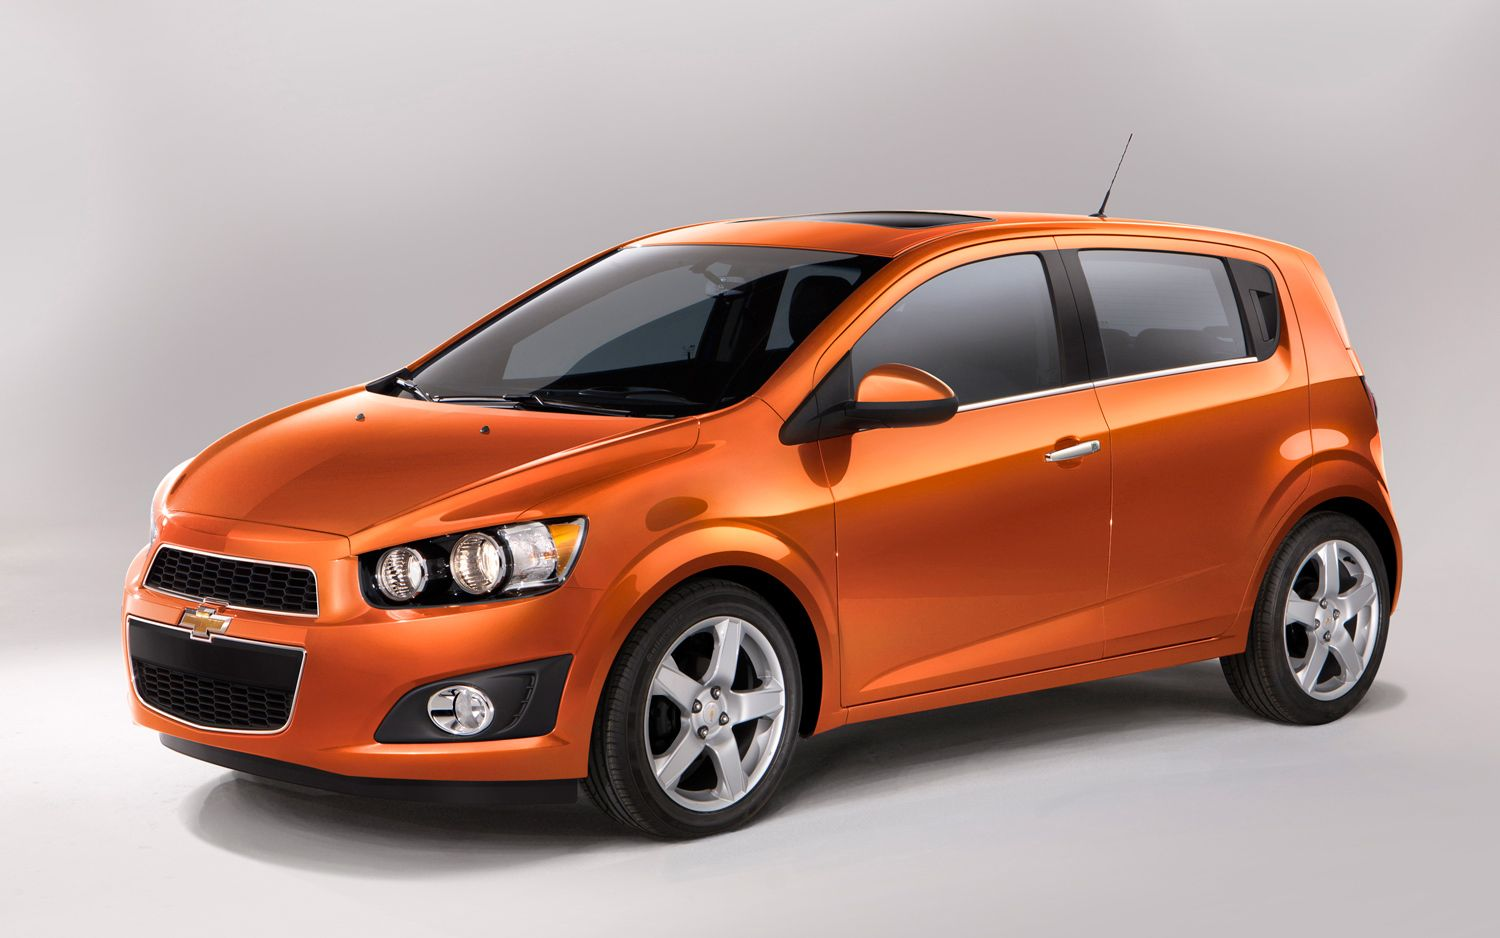 Buy Or Lease A Brand New Chevrolet Sonic Hatchback For A Great